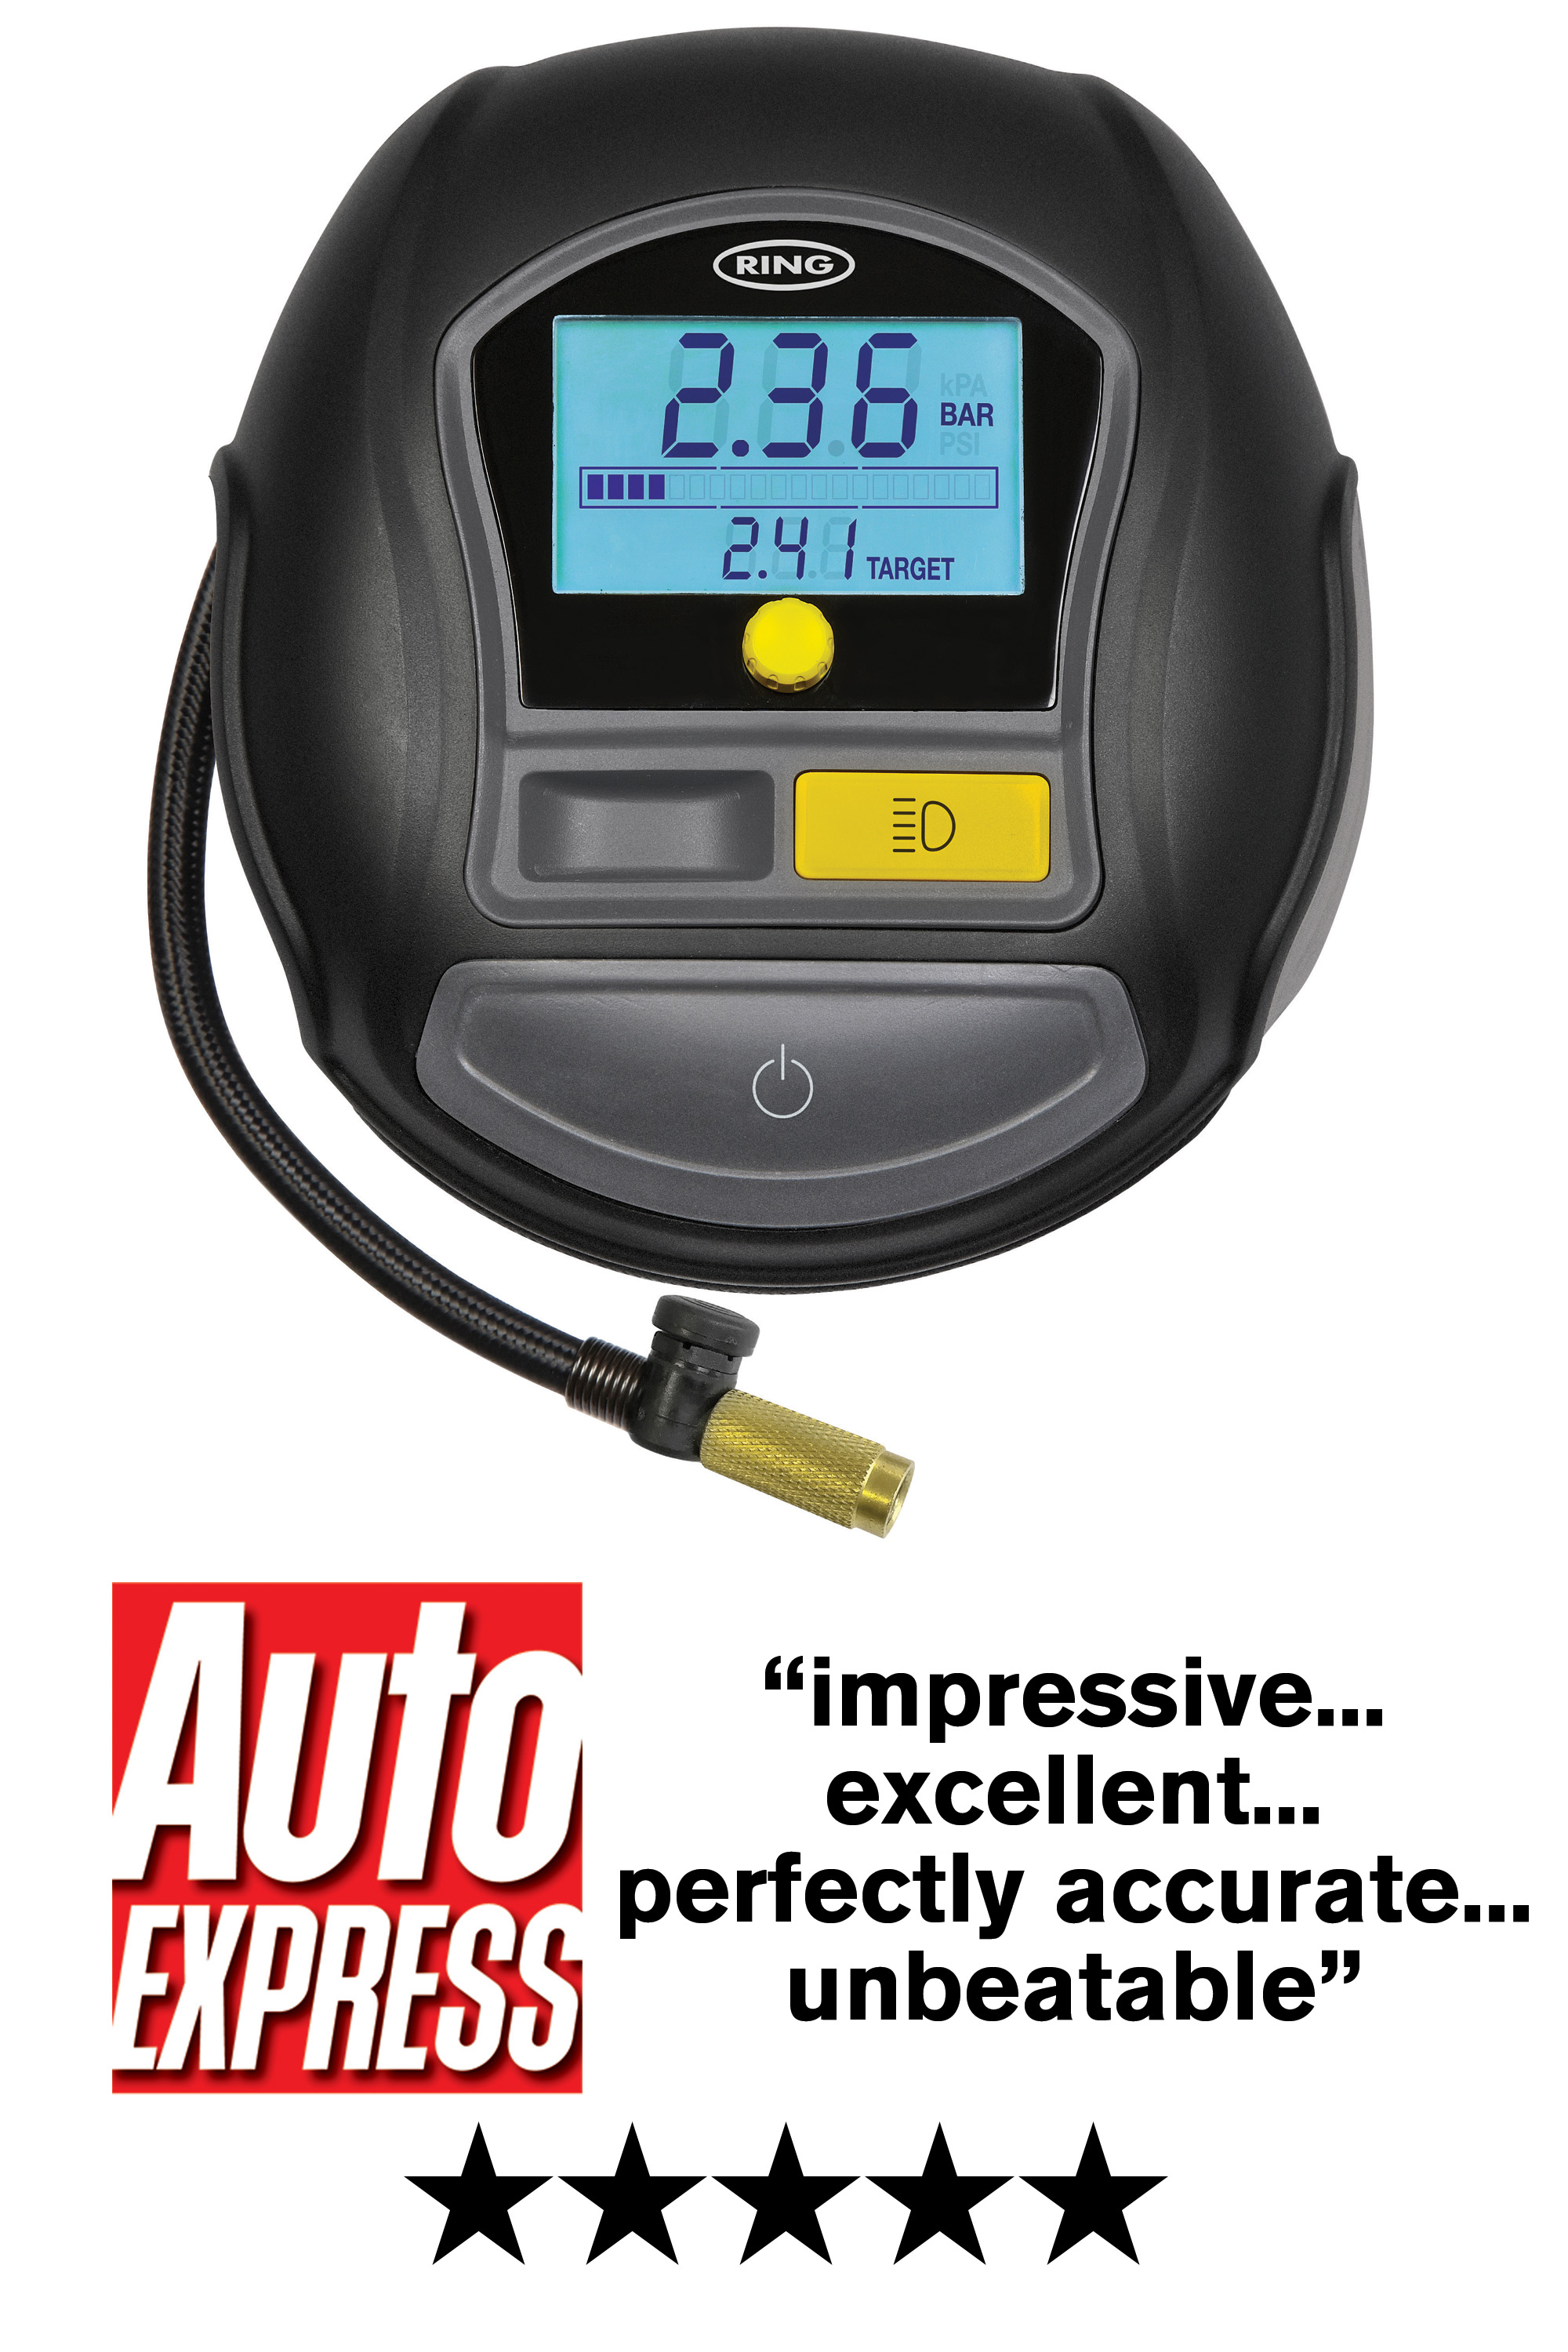 Ring RTC1000 Digital Tyre Inflator